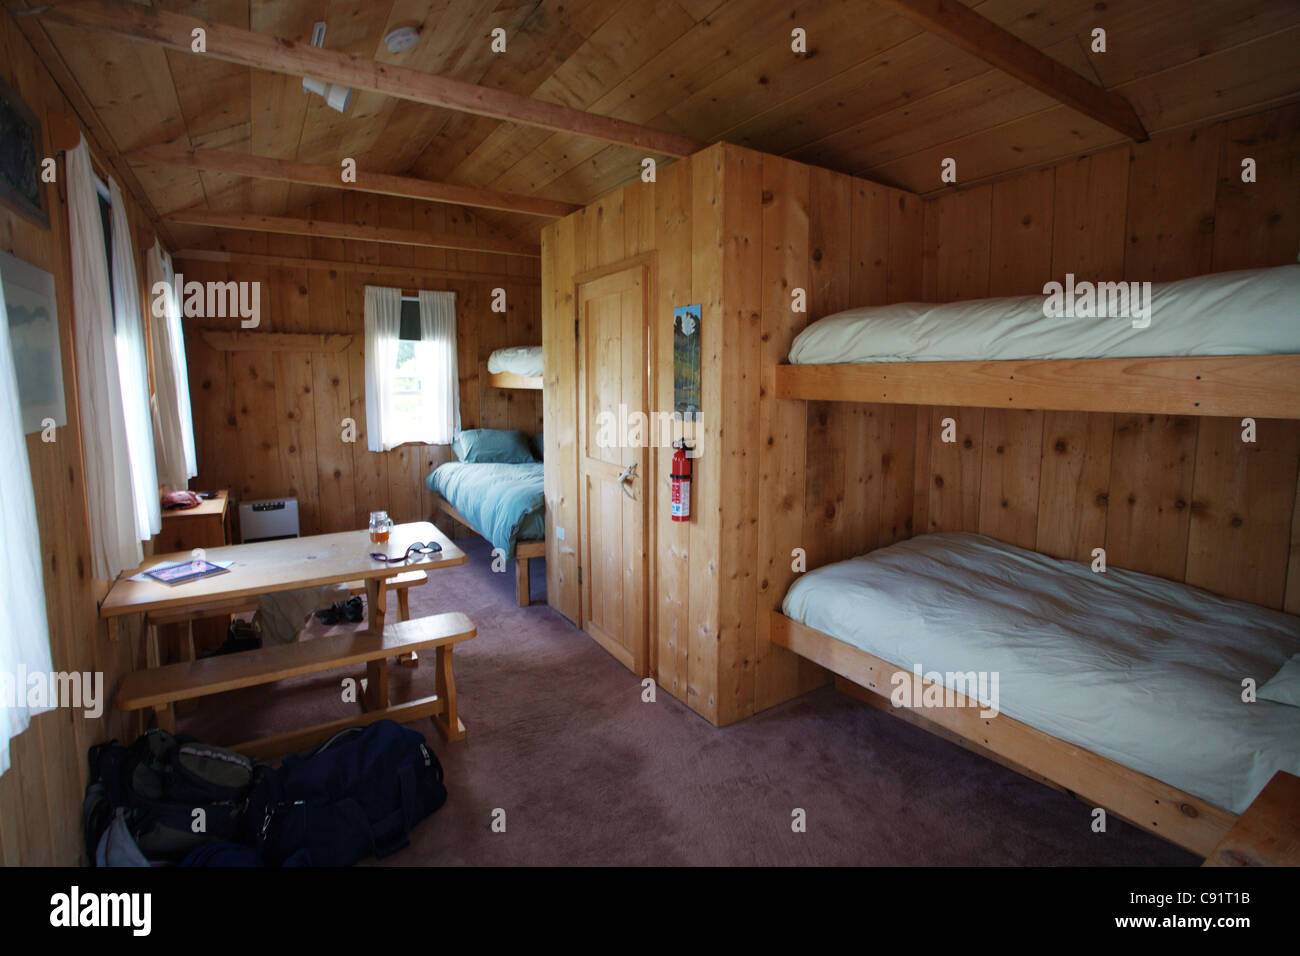 Lodging Remote Fishing Hunting Camp Bunks Beds Stock Photo 39993447